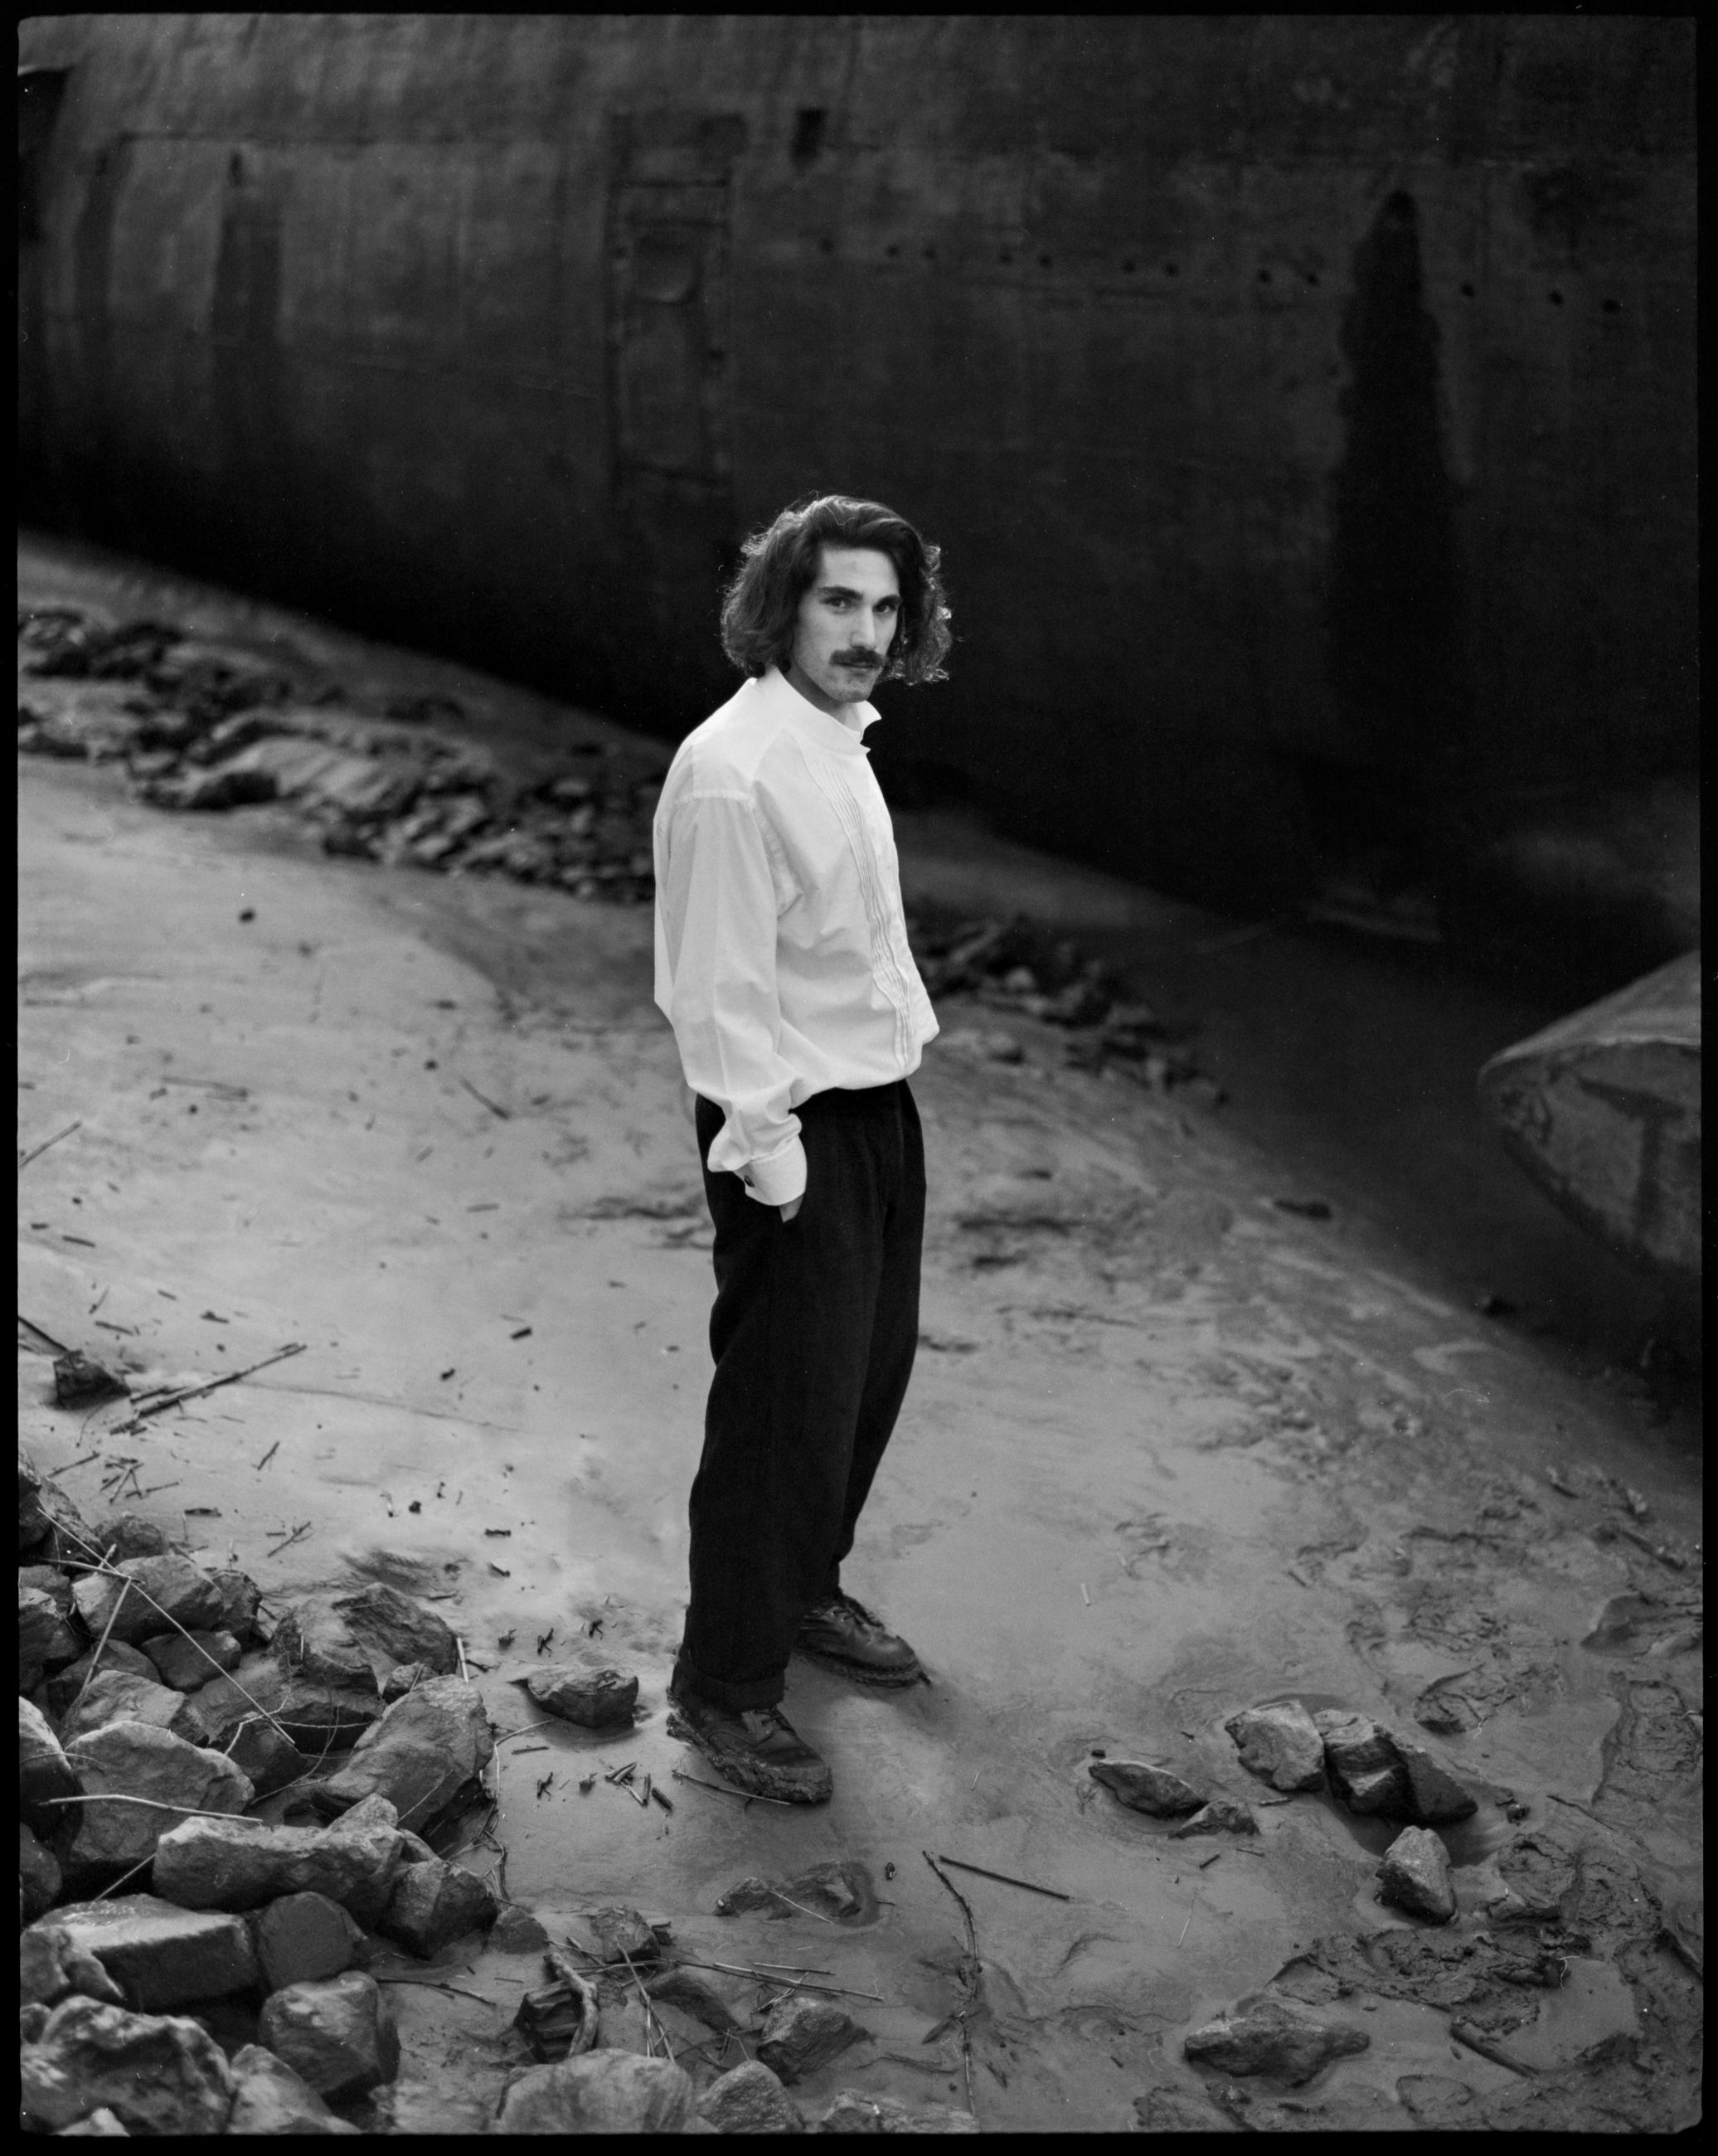 white, black, one person, black and white, monochrome photography, full length, darkness, adult, monochrome, standing, men, young adult, portrait, lifestyles, person, casual clothing, clothing, architecture